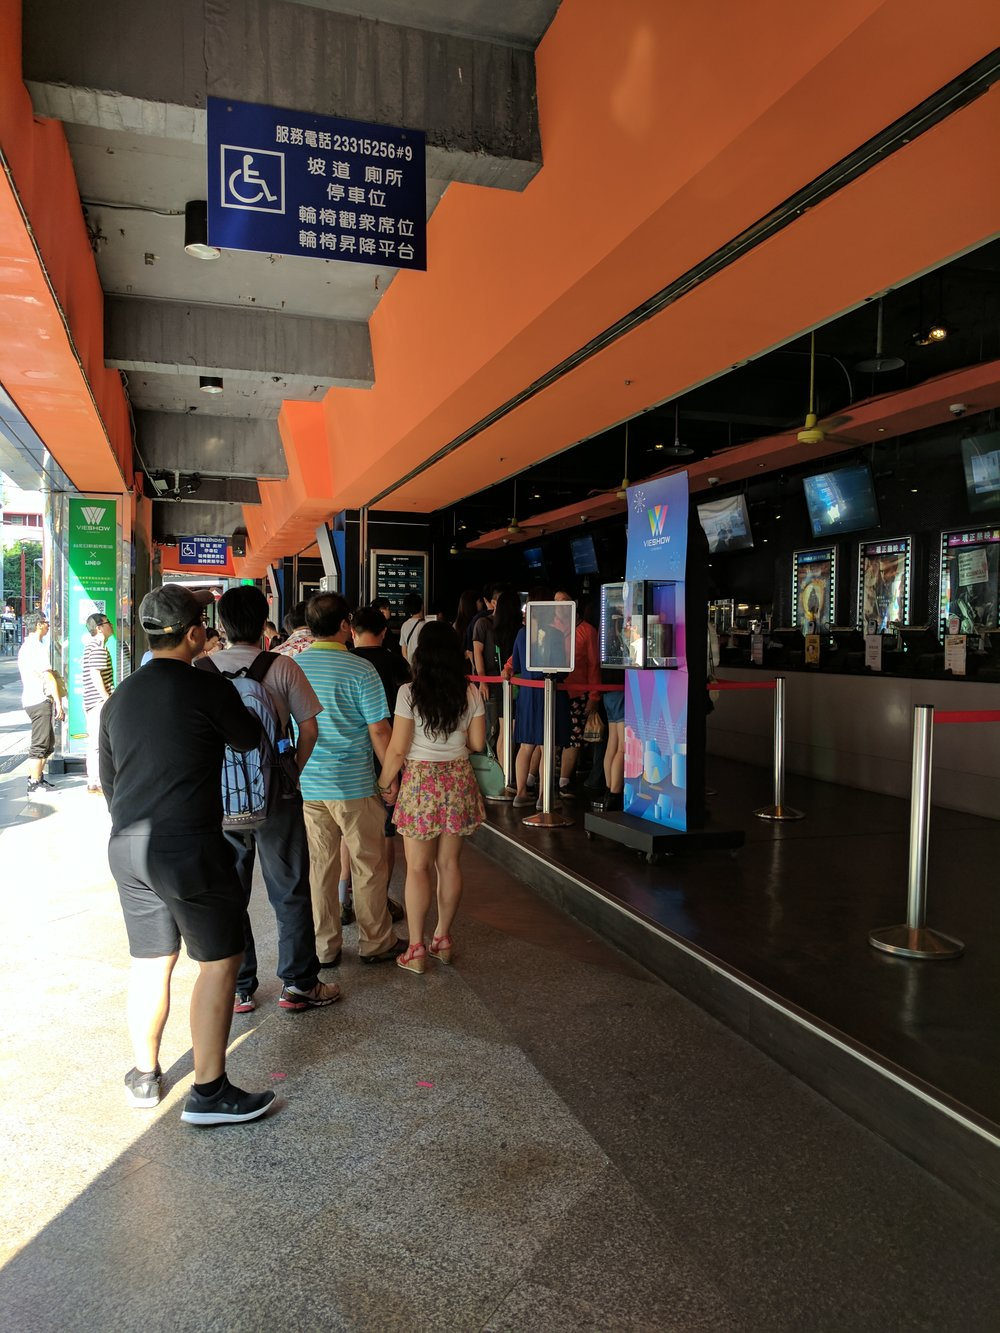 can someone please explain to me why there were long lines at the movie theatre on a tuesday at 9am?